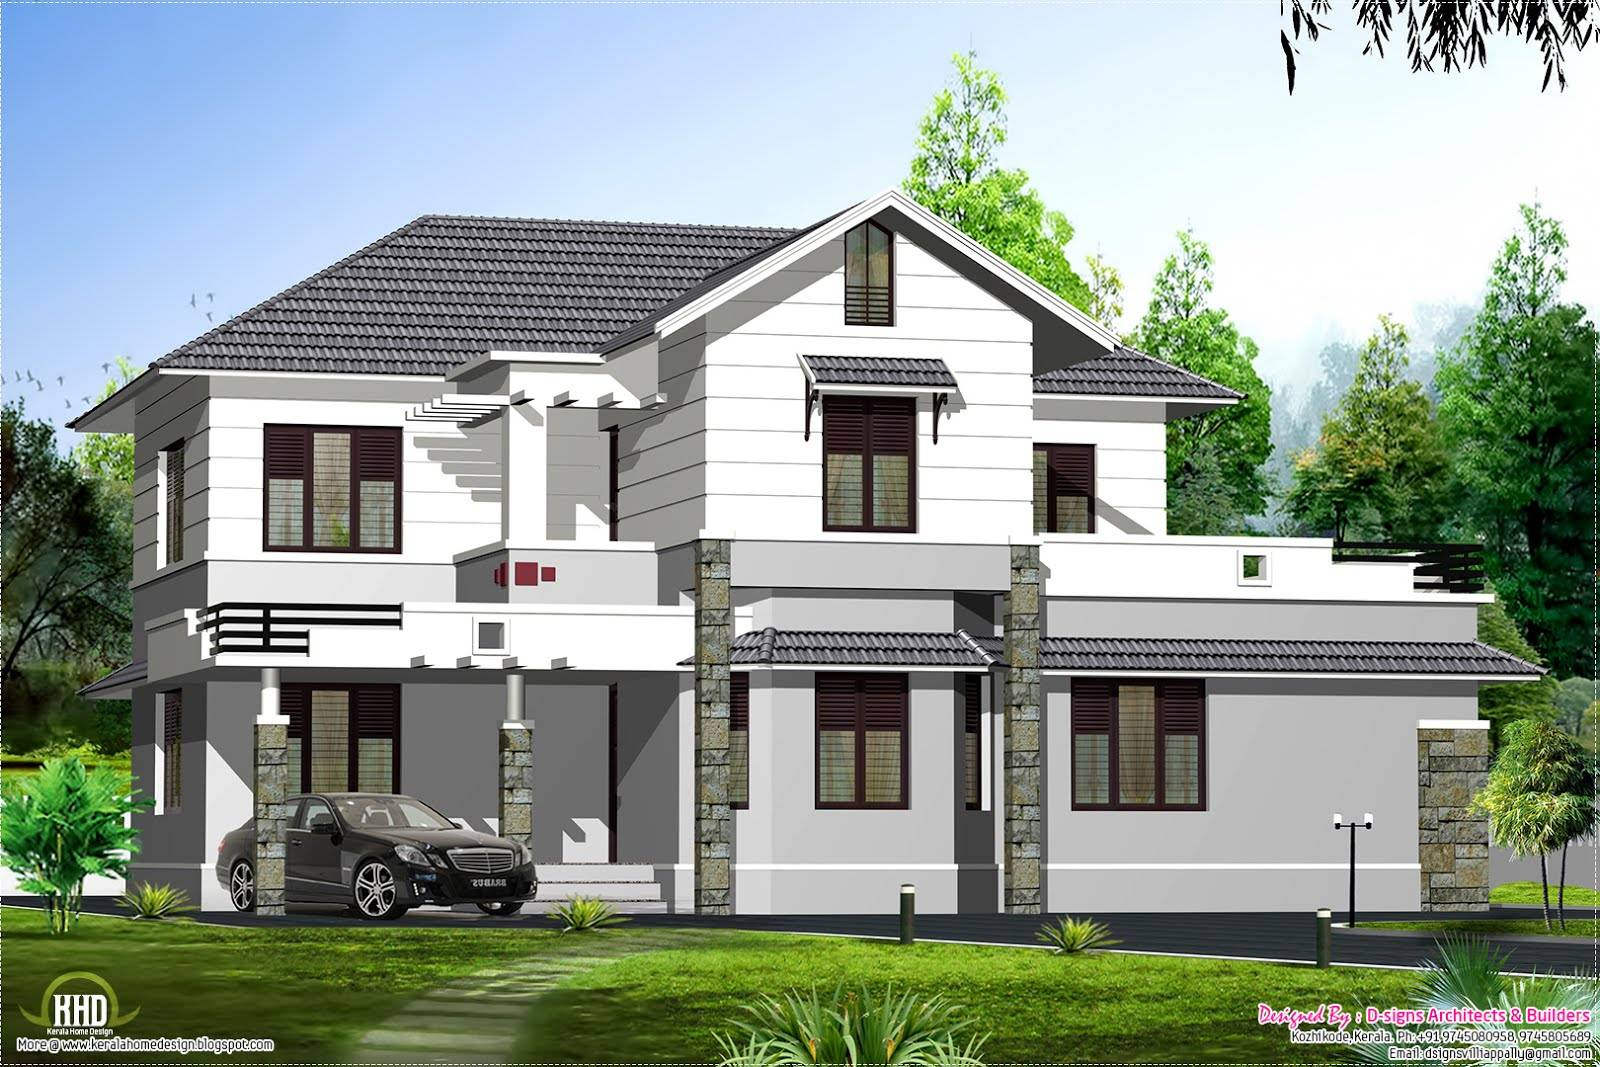 Style Sloping Roof Villa Design Kerala Home Floor Plans Home Plans Blueprints 90200